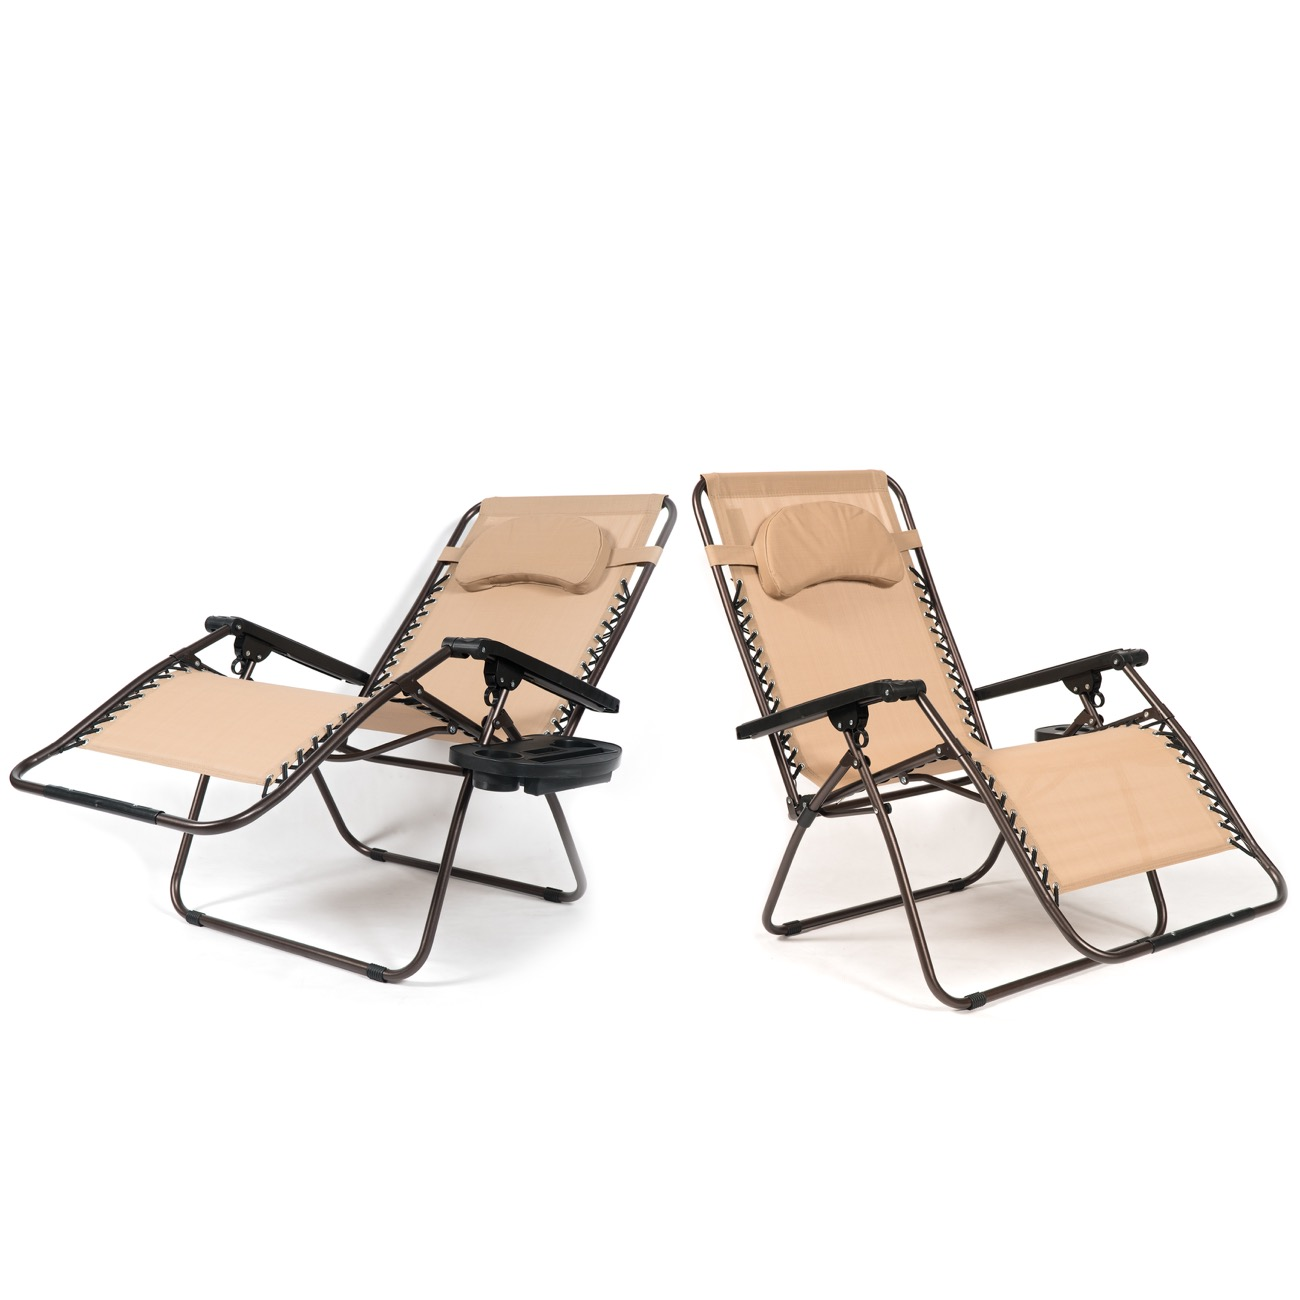 Belleze XL Oversized (2)Pack Zero Gravity Chairs Patio Lounge + Cup  Holder/Utility Tray, Beige   Walmart.com